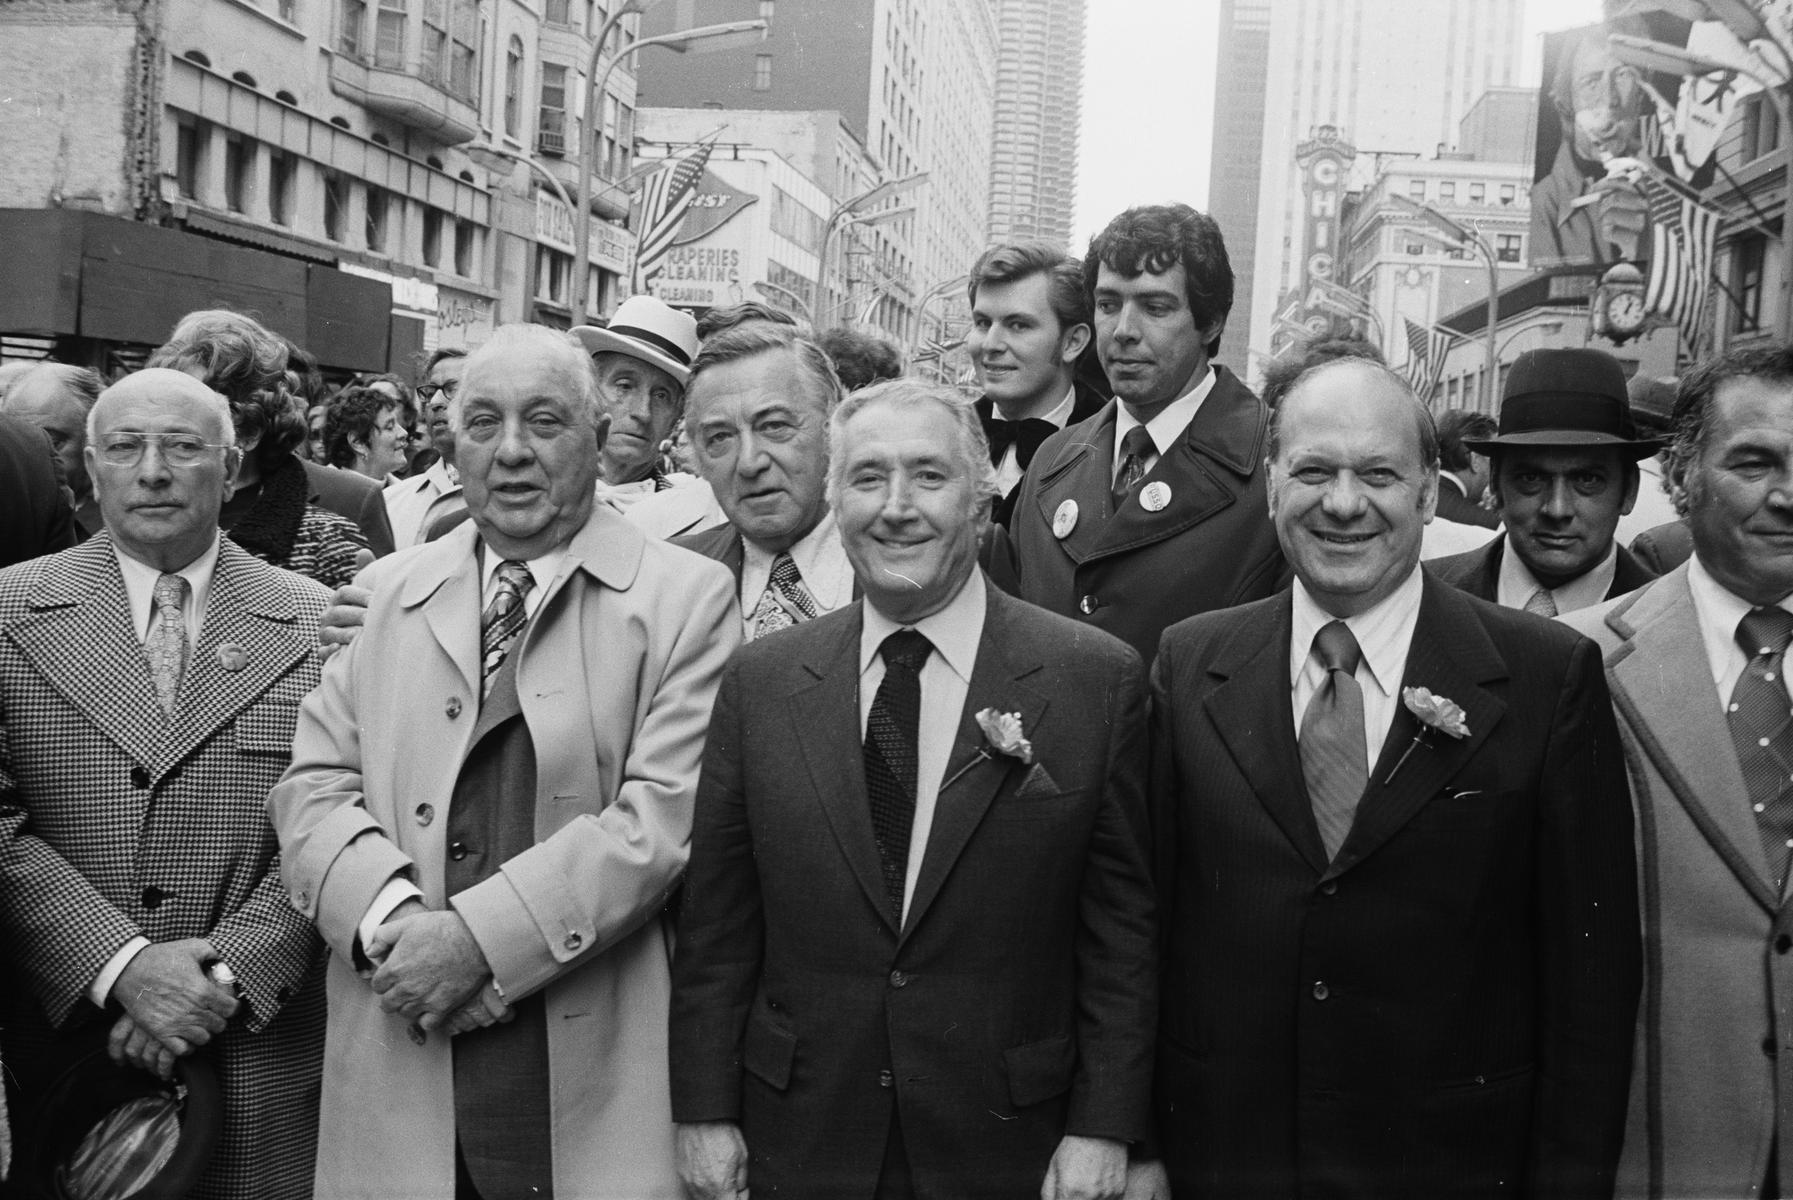 life and contributions of richard joseph daley as the mayor of chicago for 21 years Richard j daley richard joseph daley may 15, 1902 - december 20, 1976 was an american politician who served as the mayor of chicago for a total of 21 years 1955-1976 and chairman of the cook.